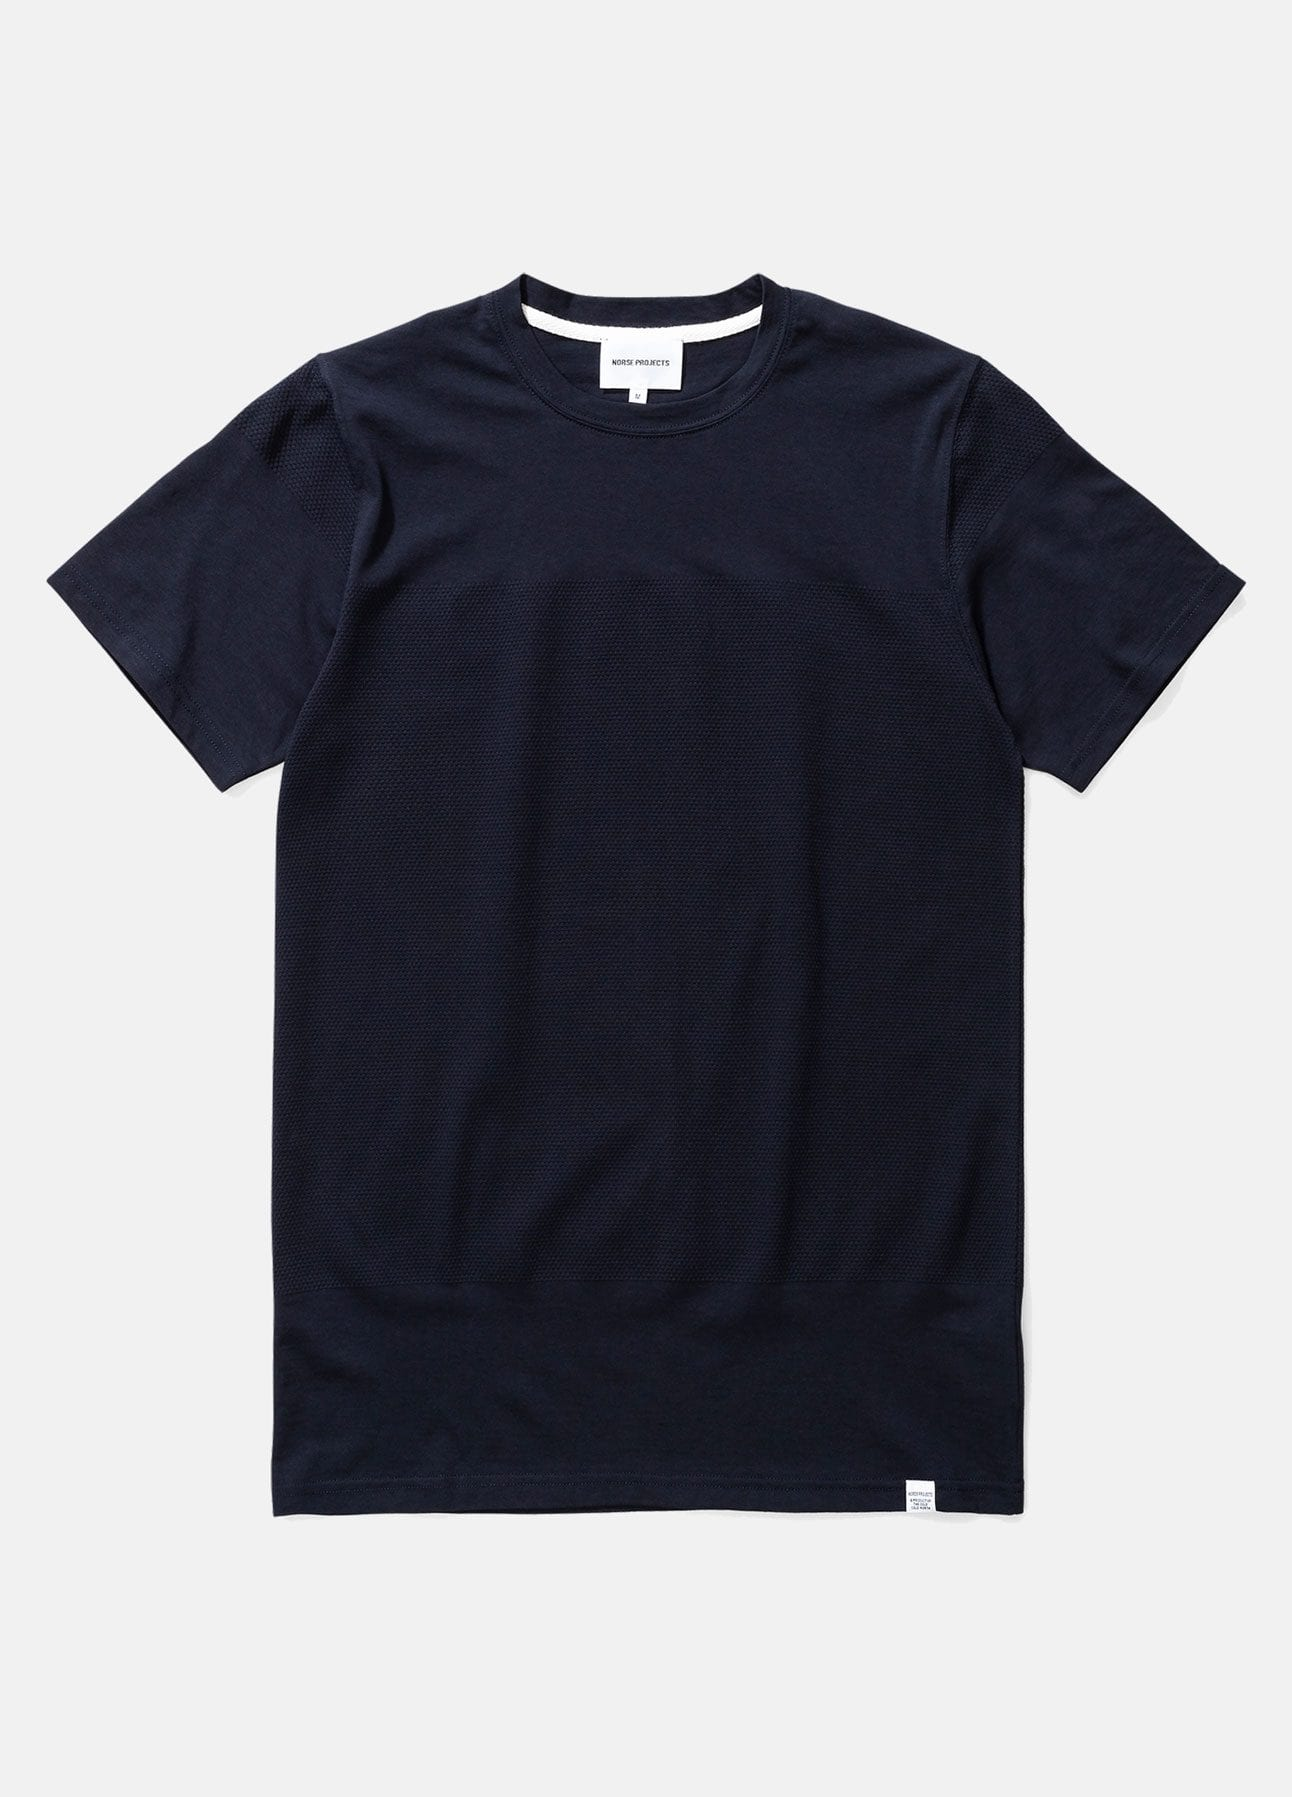 navy niels bubble t-shirt fra norse projects